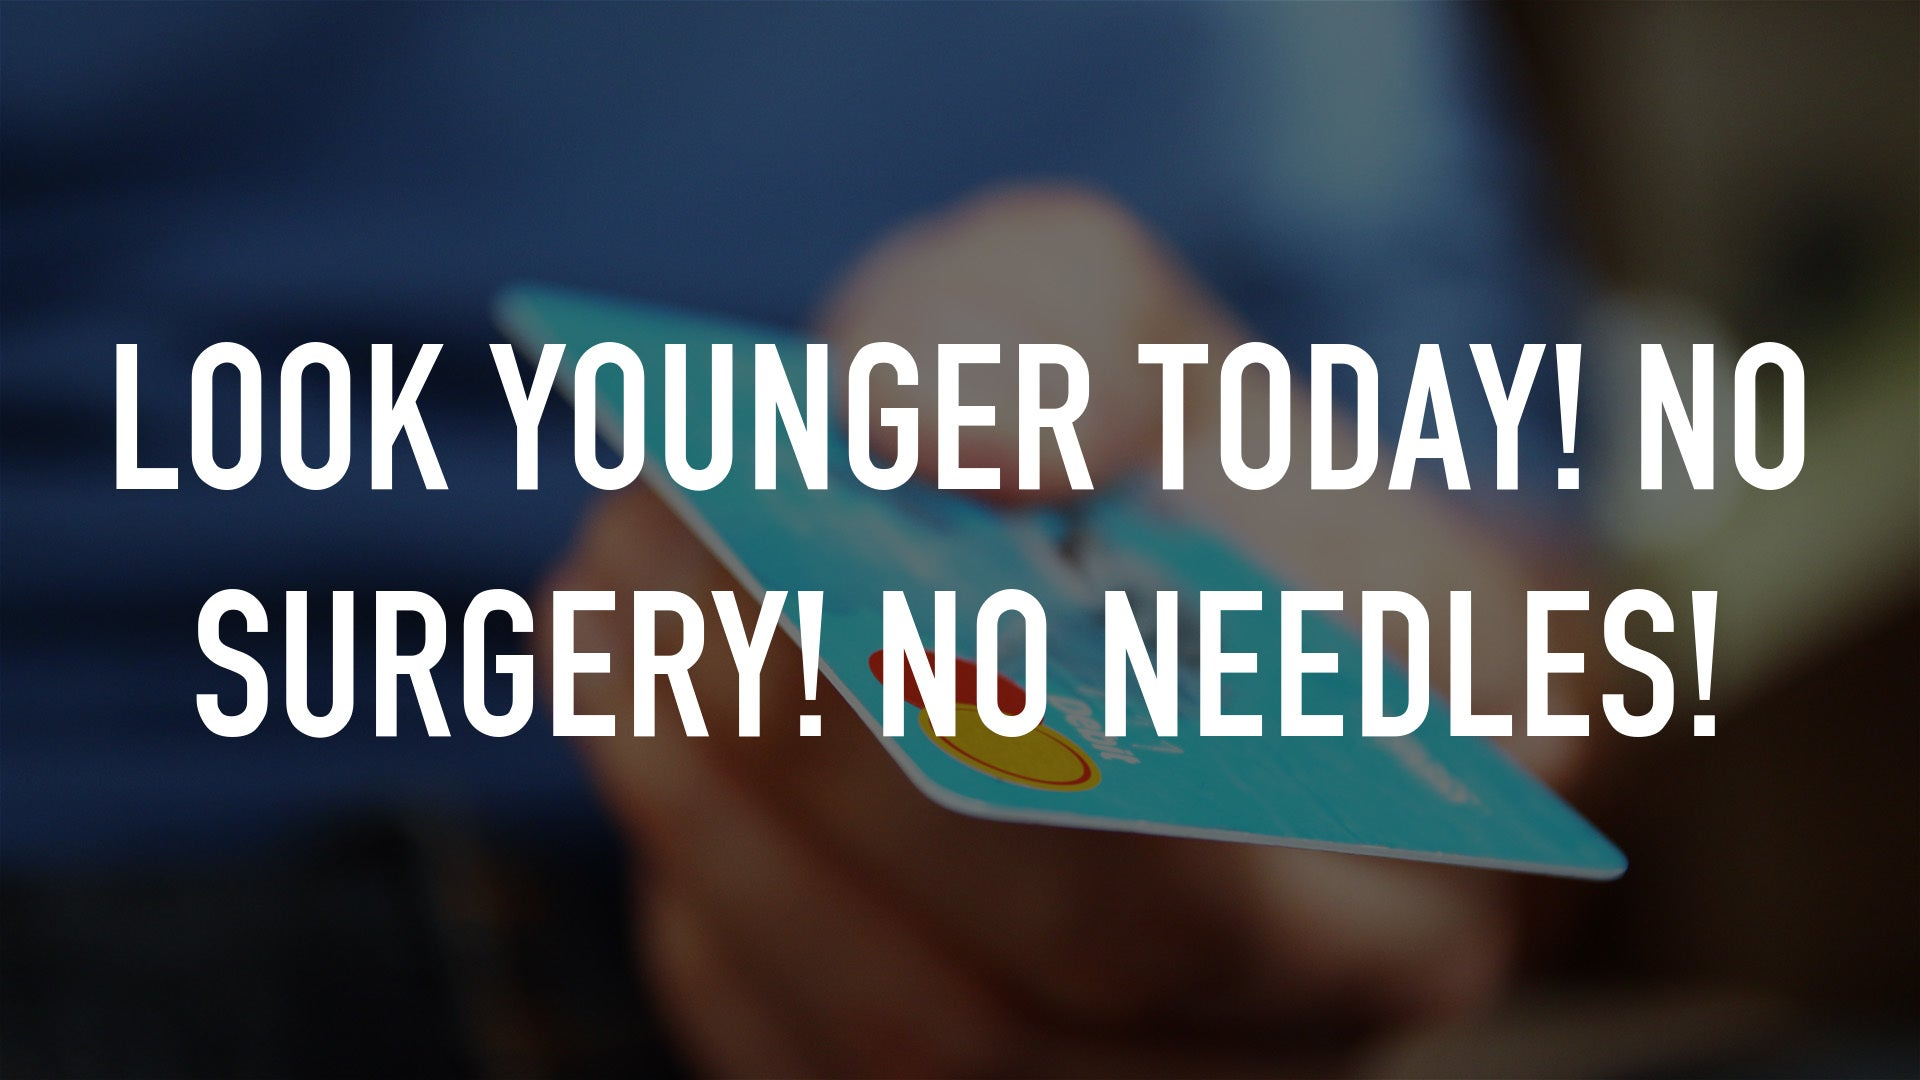 Look Younger Today! No Surgery! No Needles!